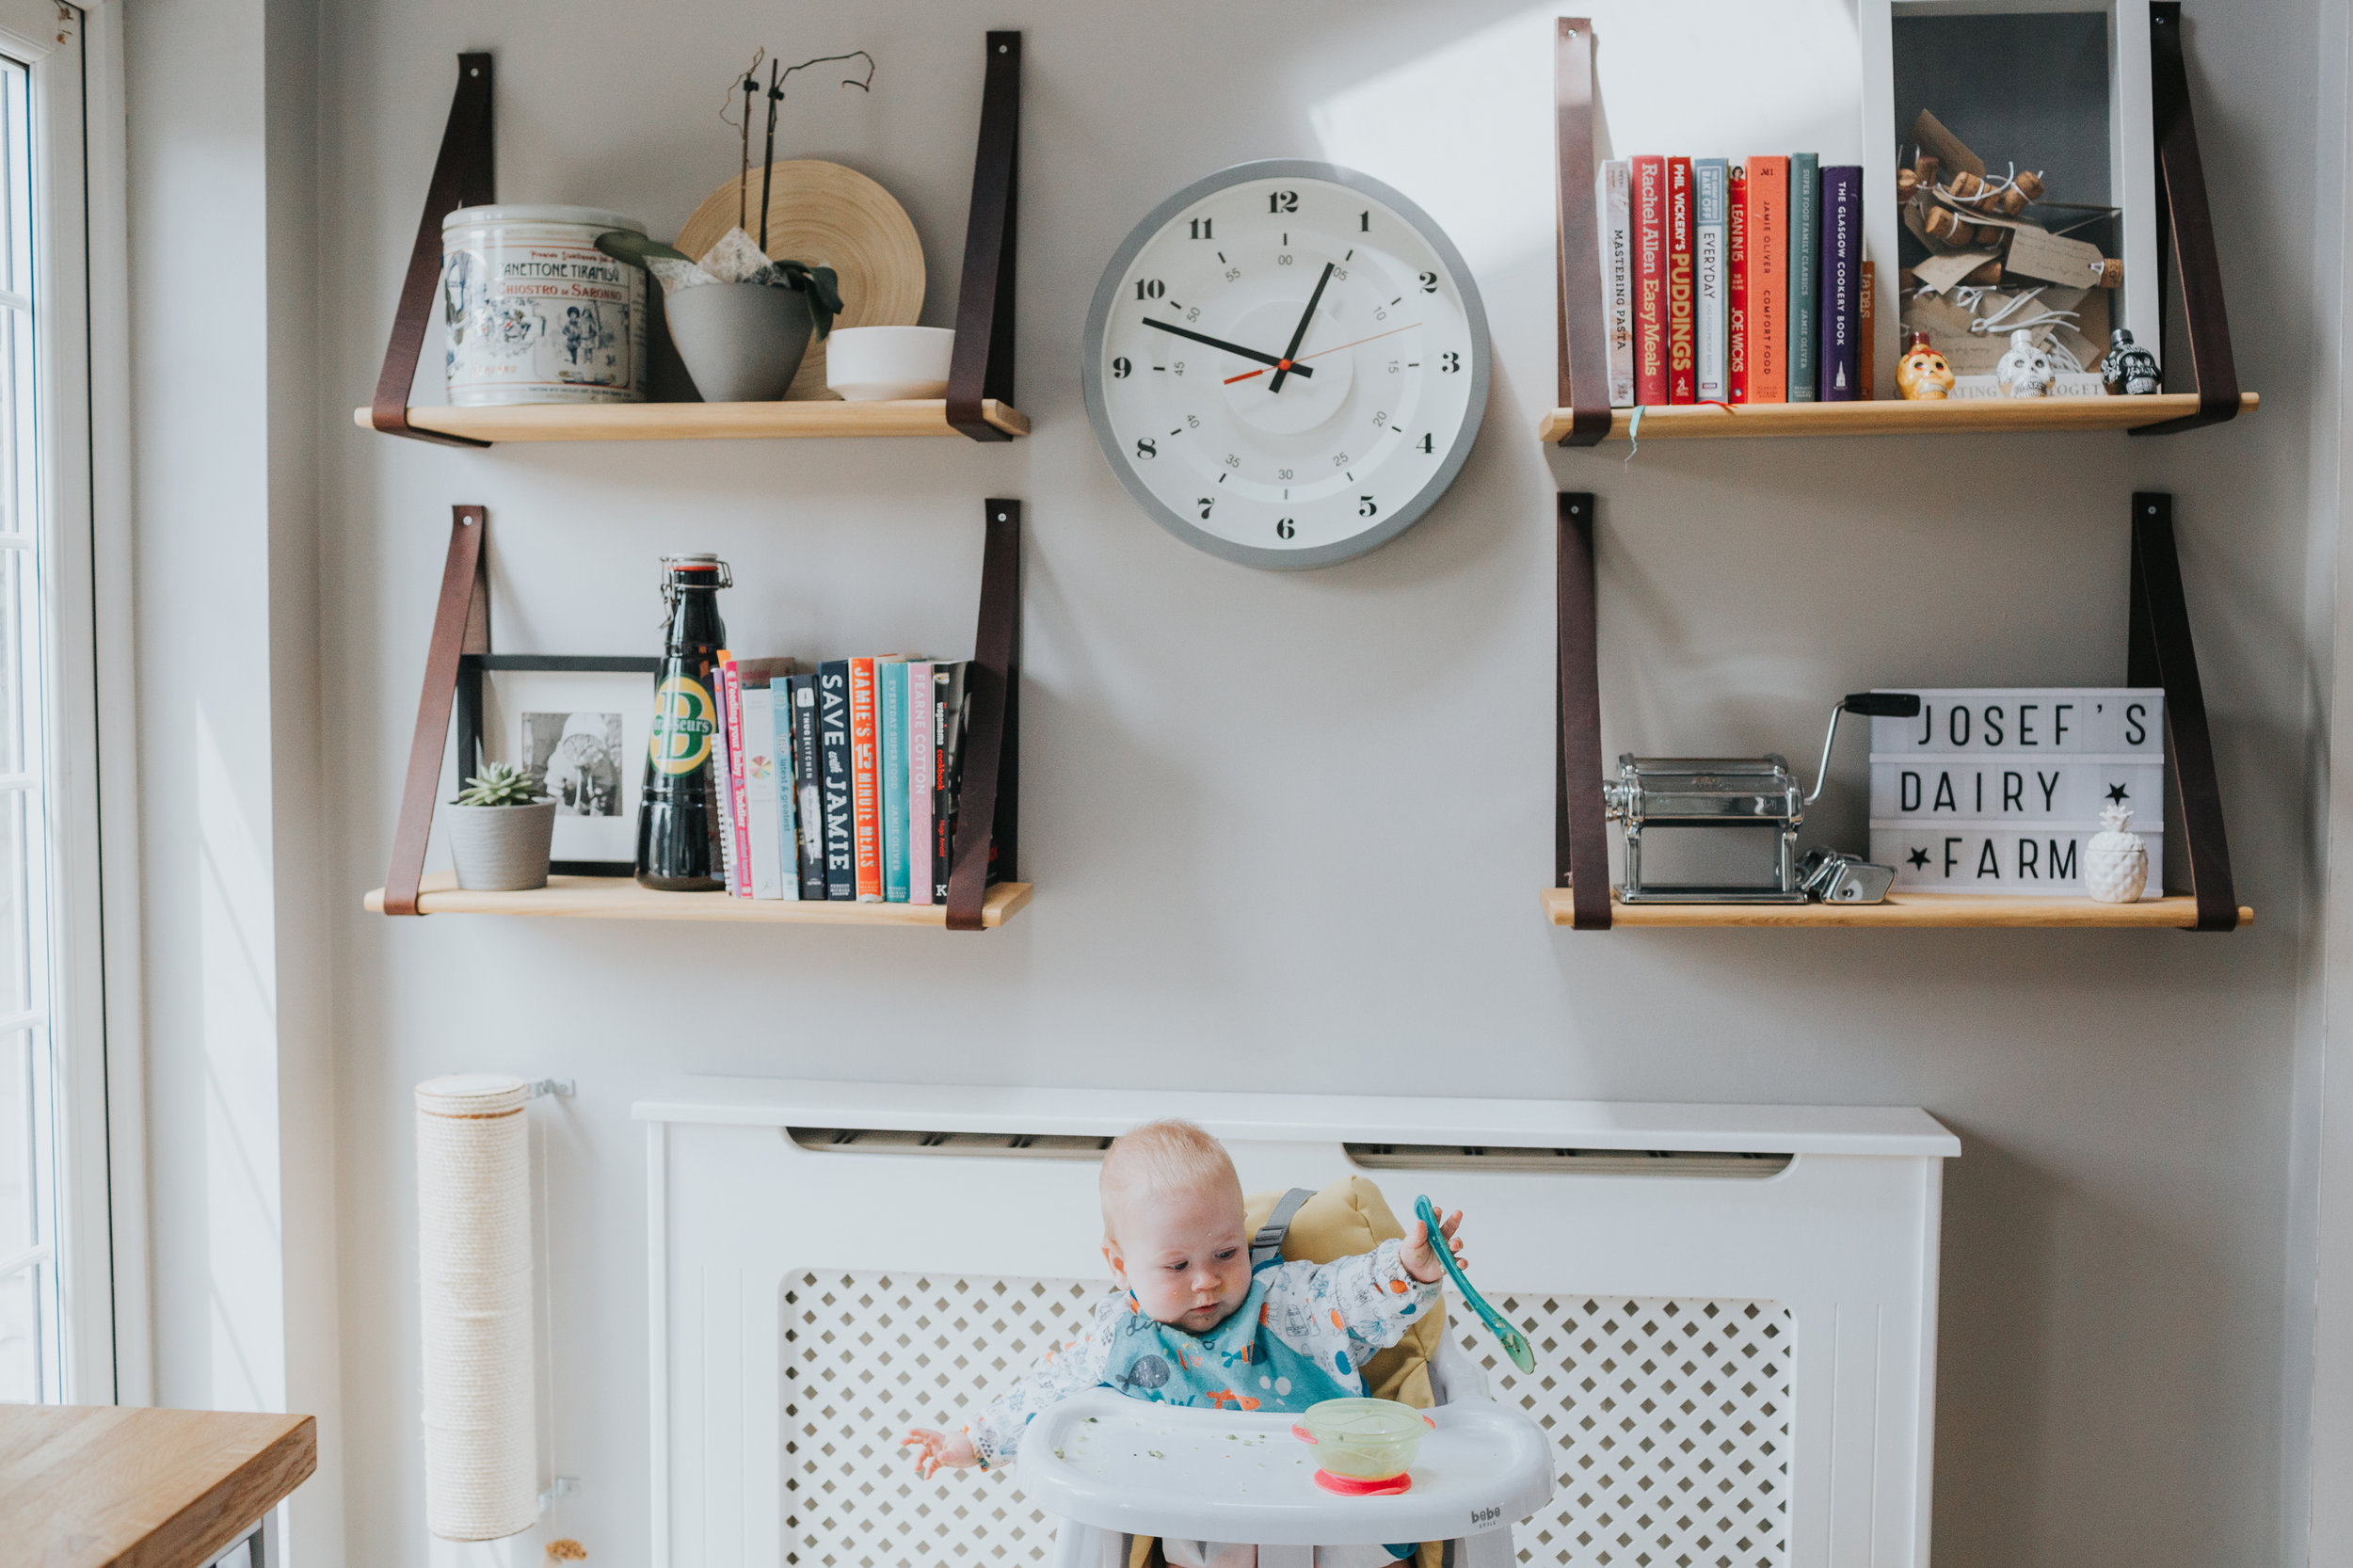 Baby playing with spoon in his high chair below a large clock.